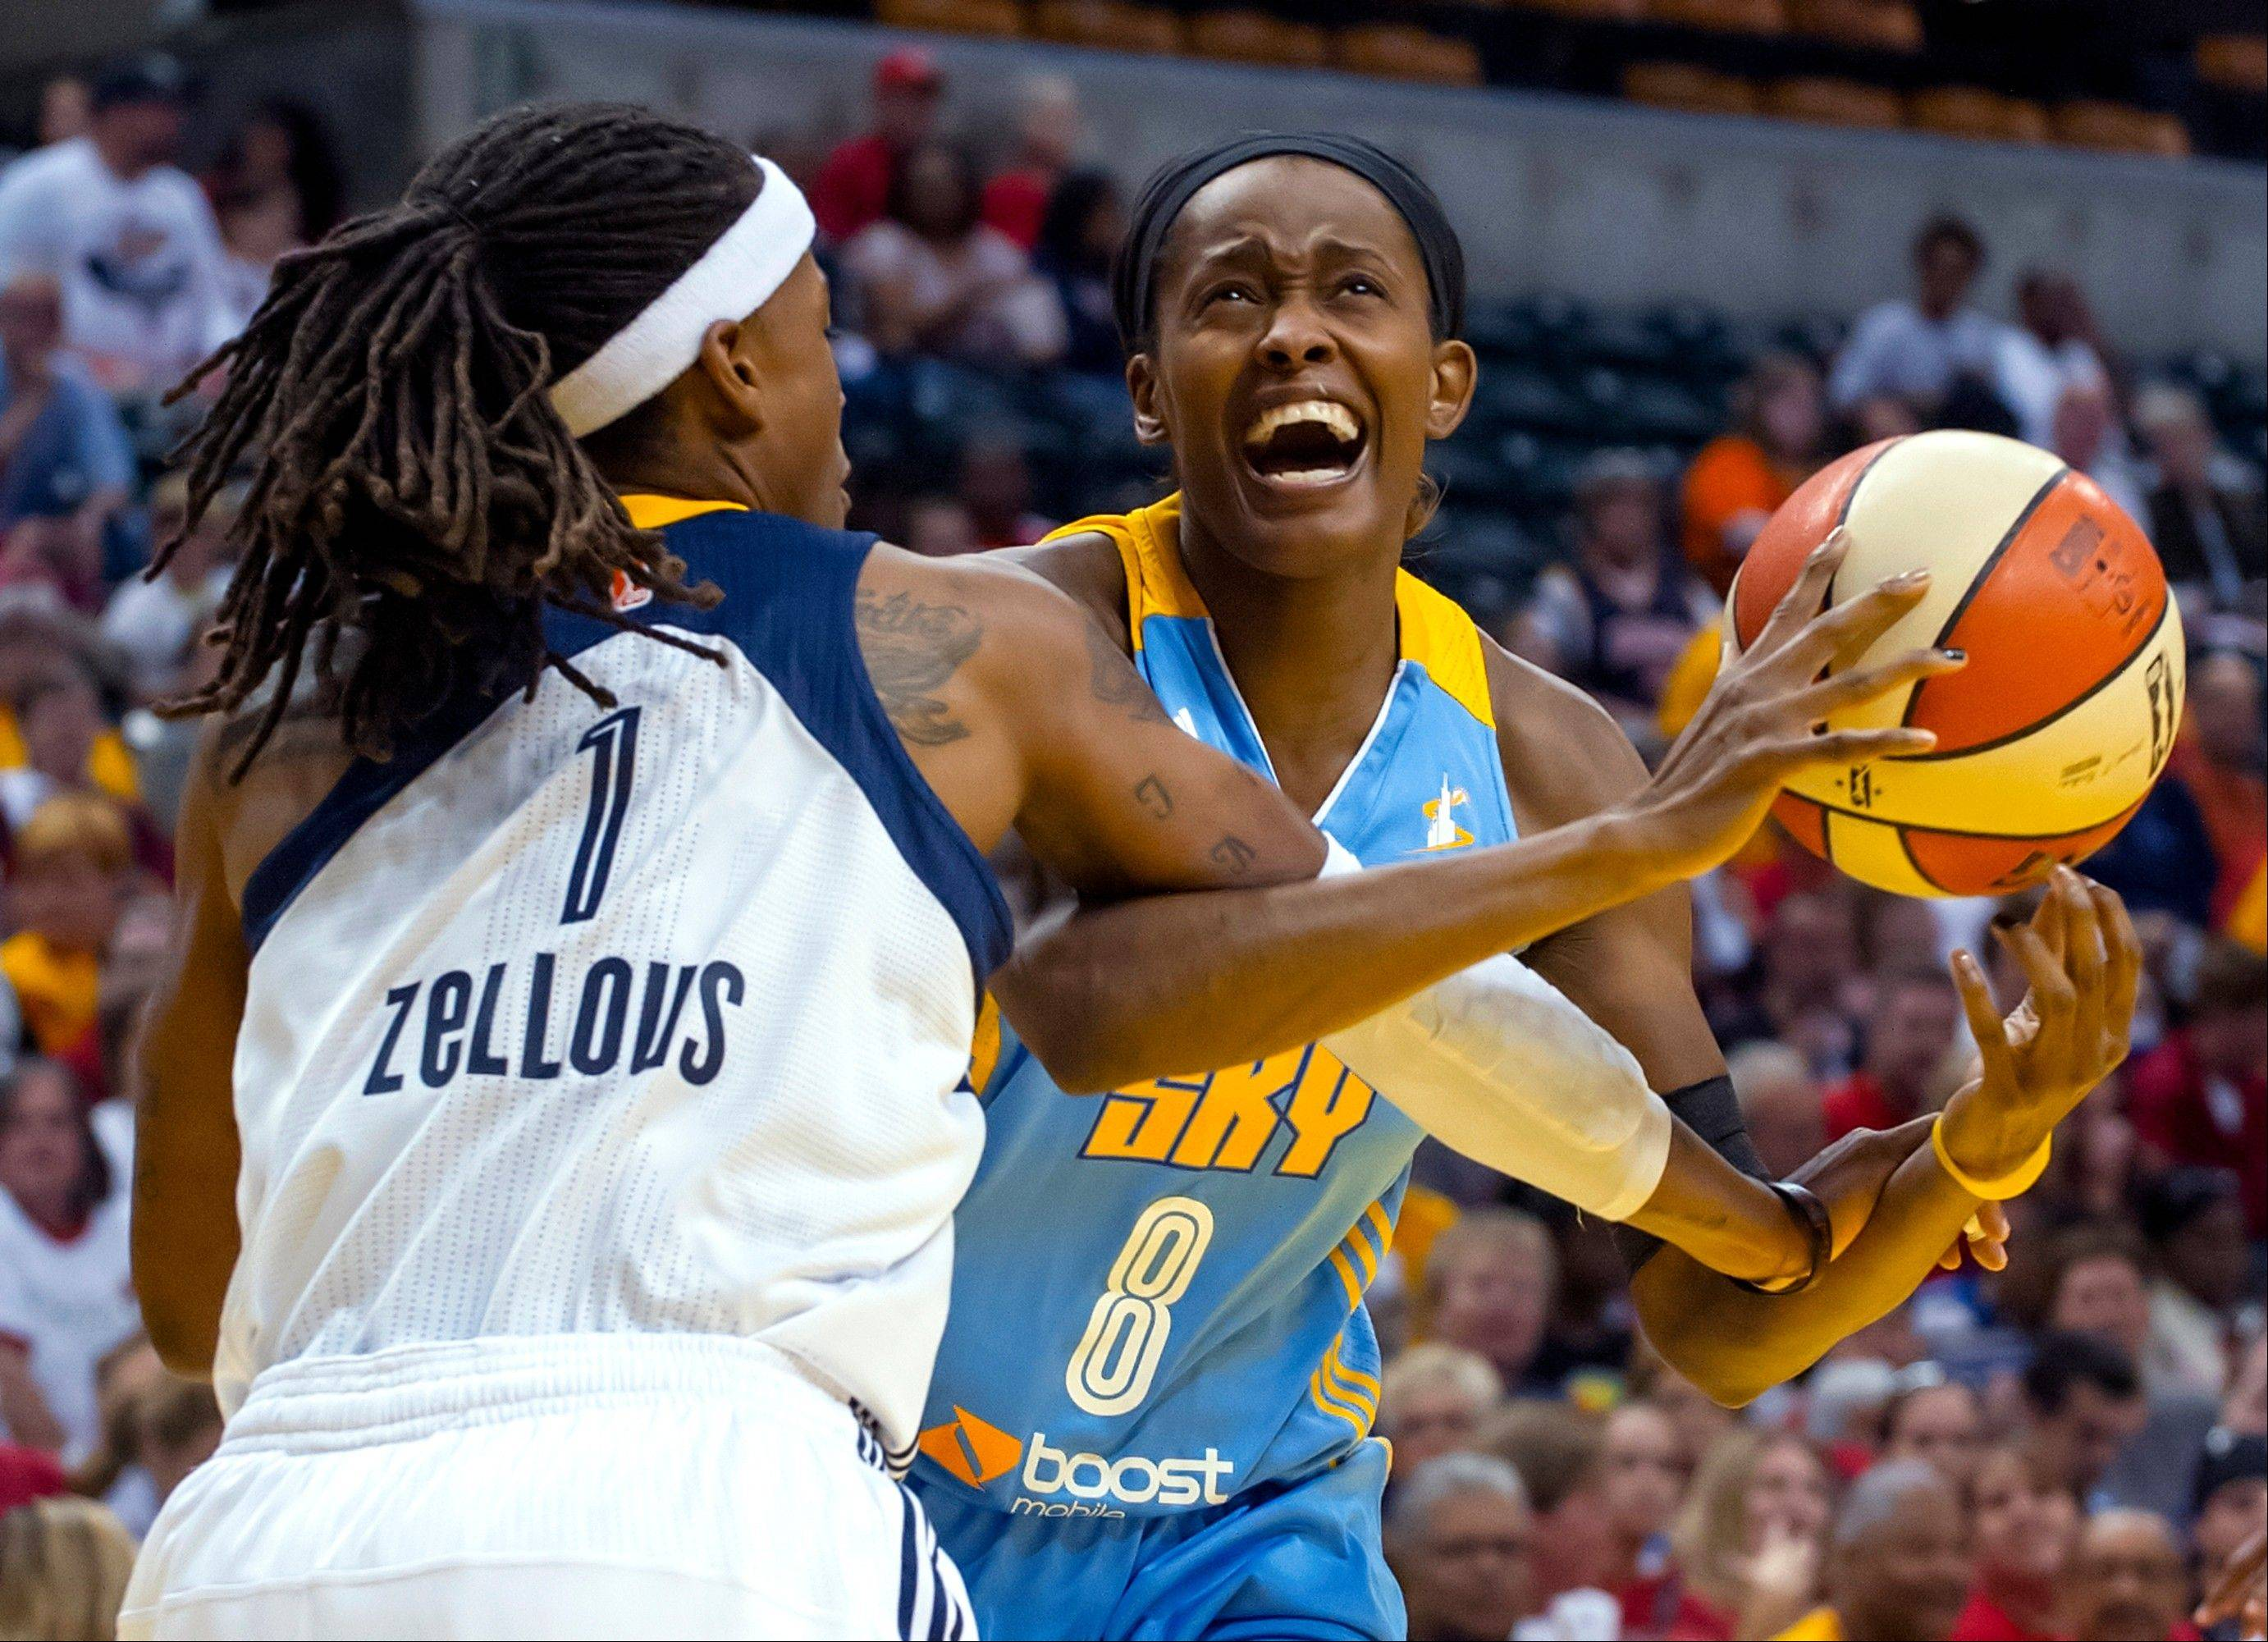 Chicago Sky forward Swin Cash (8) is fouled by Indiana Fever guard Shavonte Zellous (1) on her way to the basket during the first half of Game 2 of the WNBA basketball Eastern Conference semifinal series, Sunday, Sept. 22, 2013, in Indianapolis.